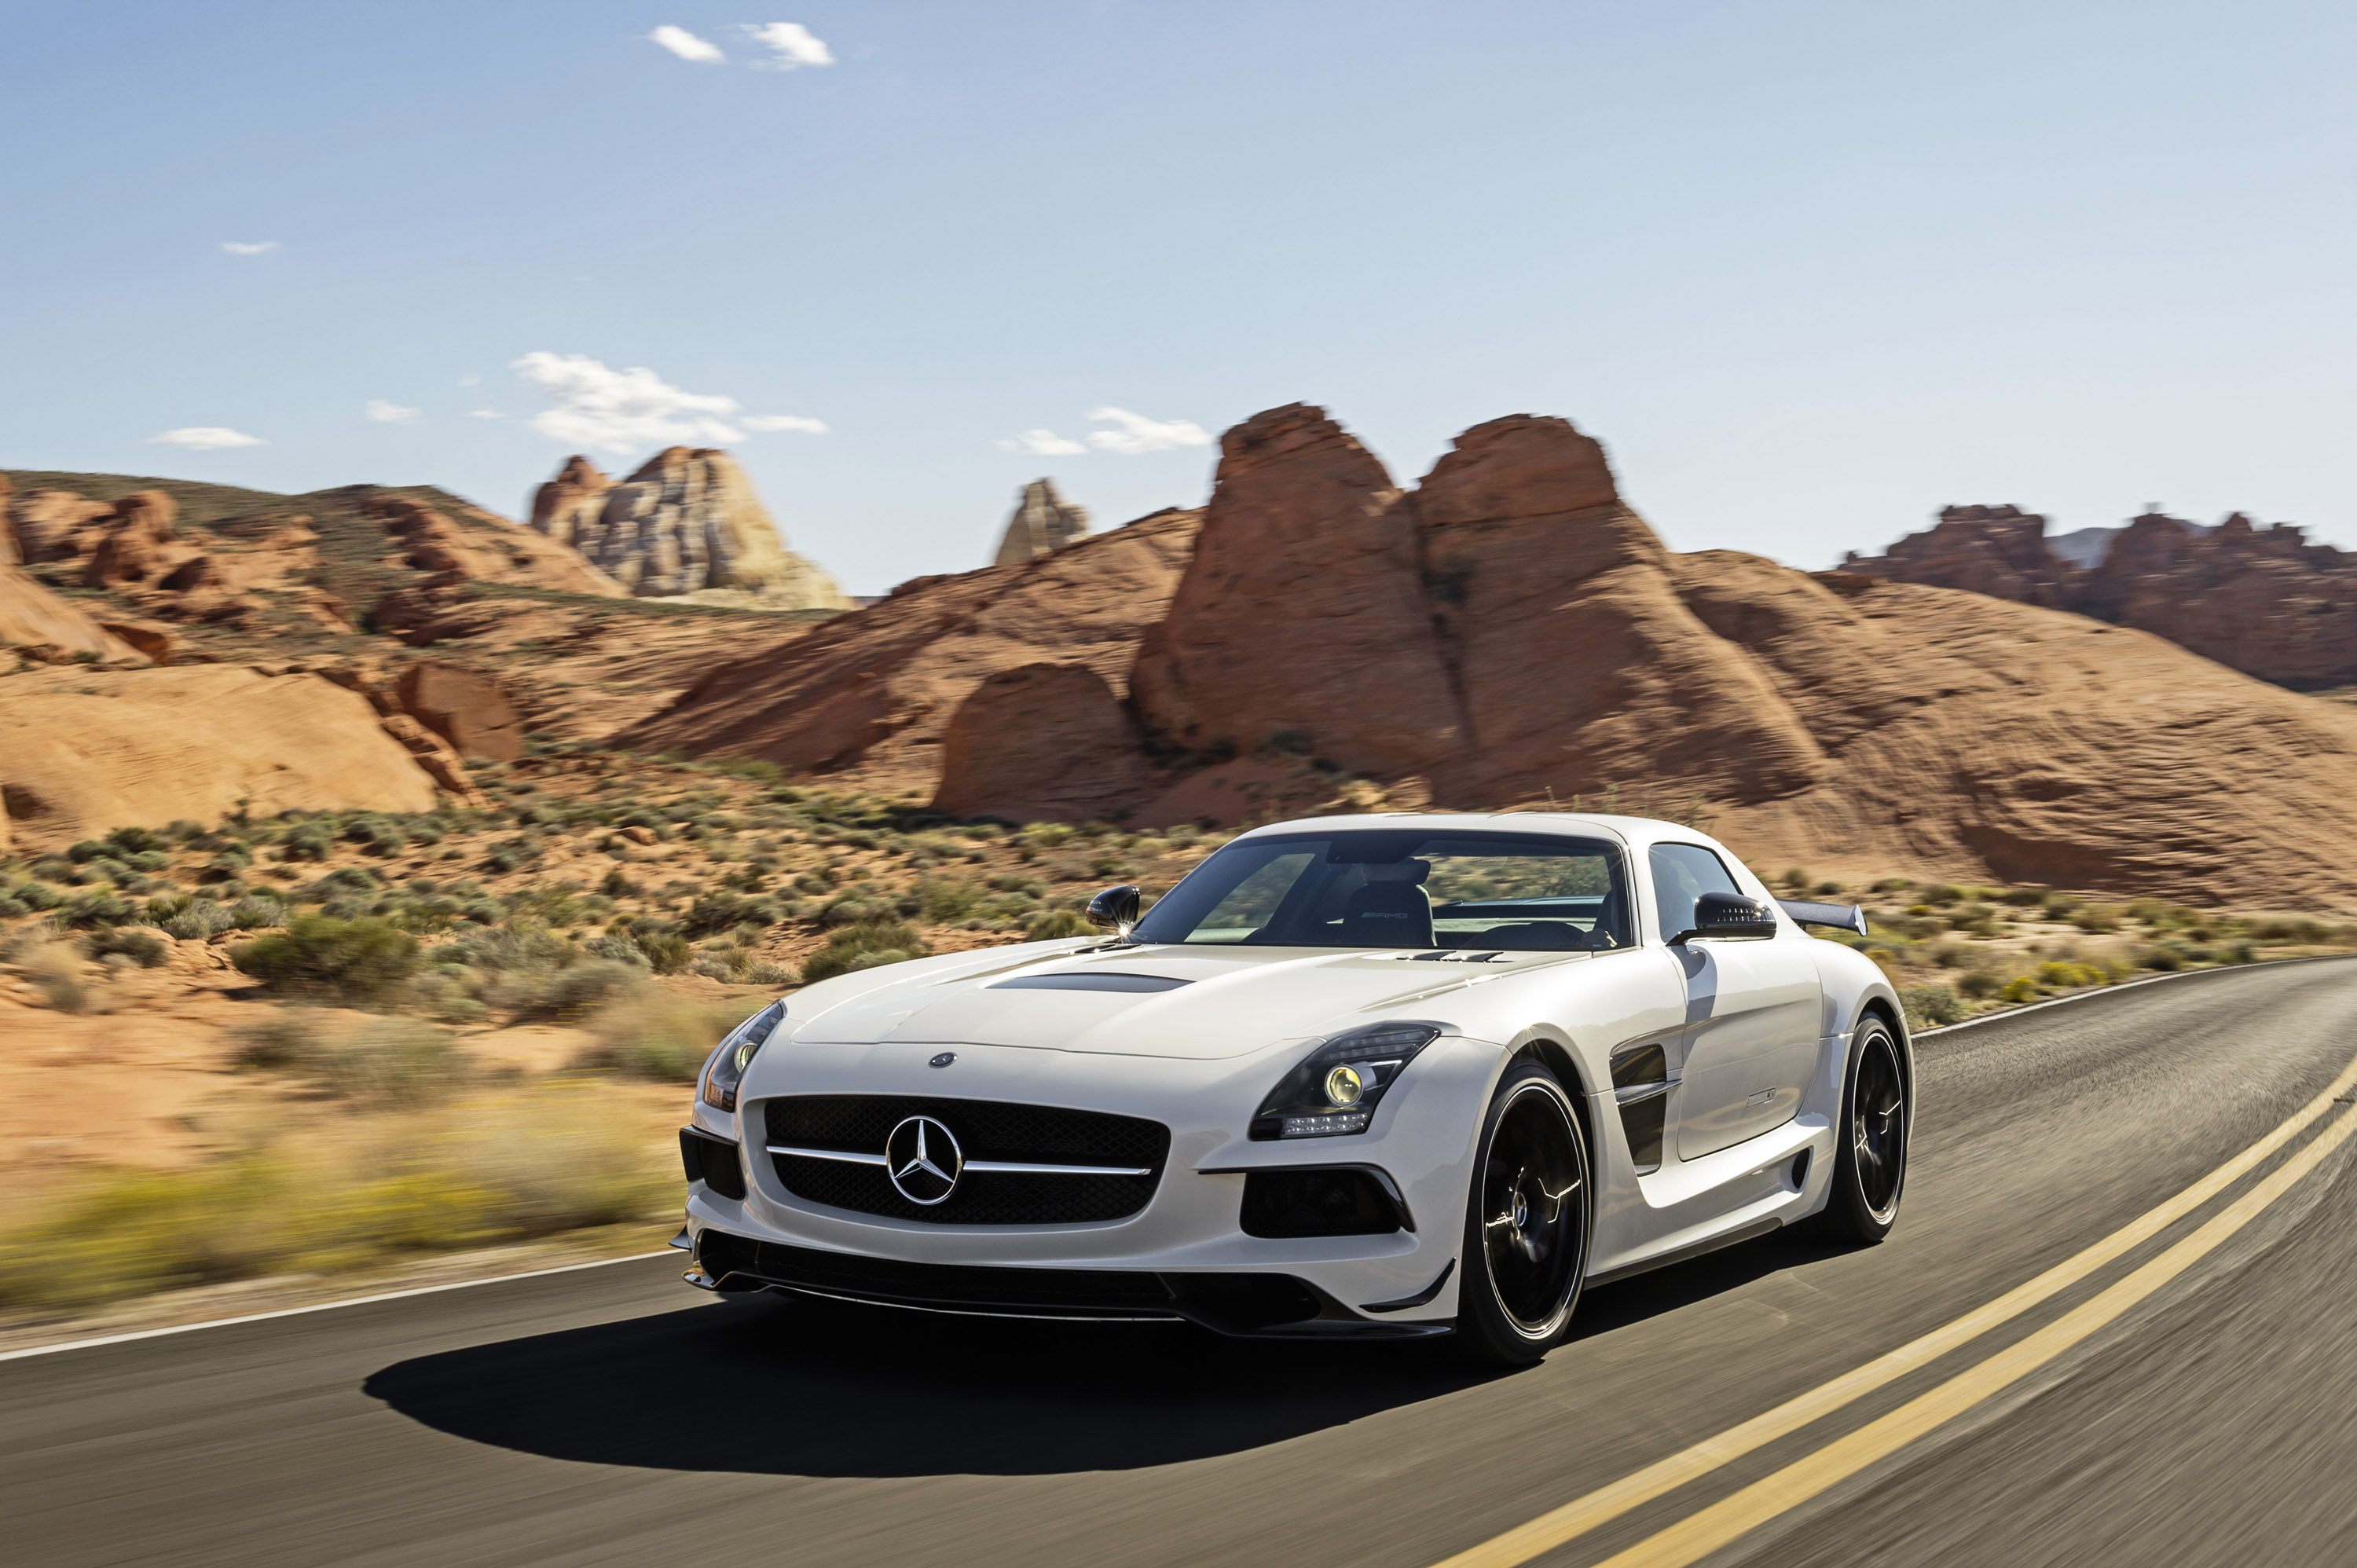 Mercedes benz sls amg black series us price 275 000 for Mercedes benz amg price